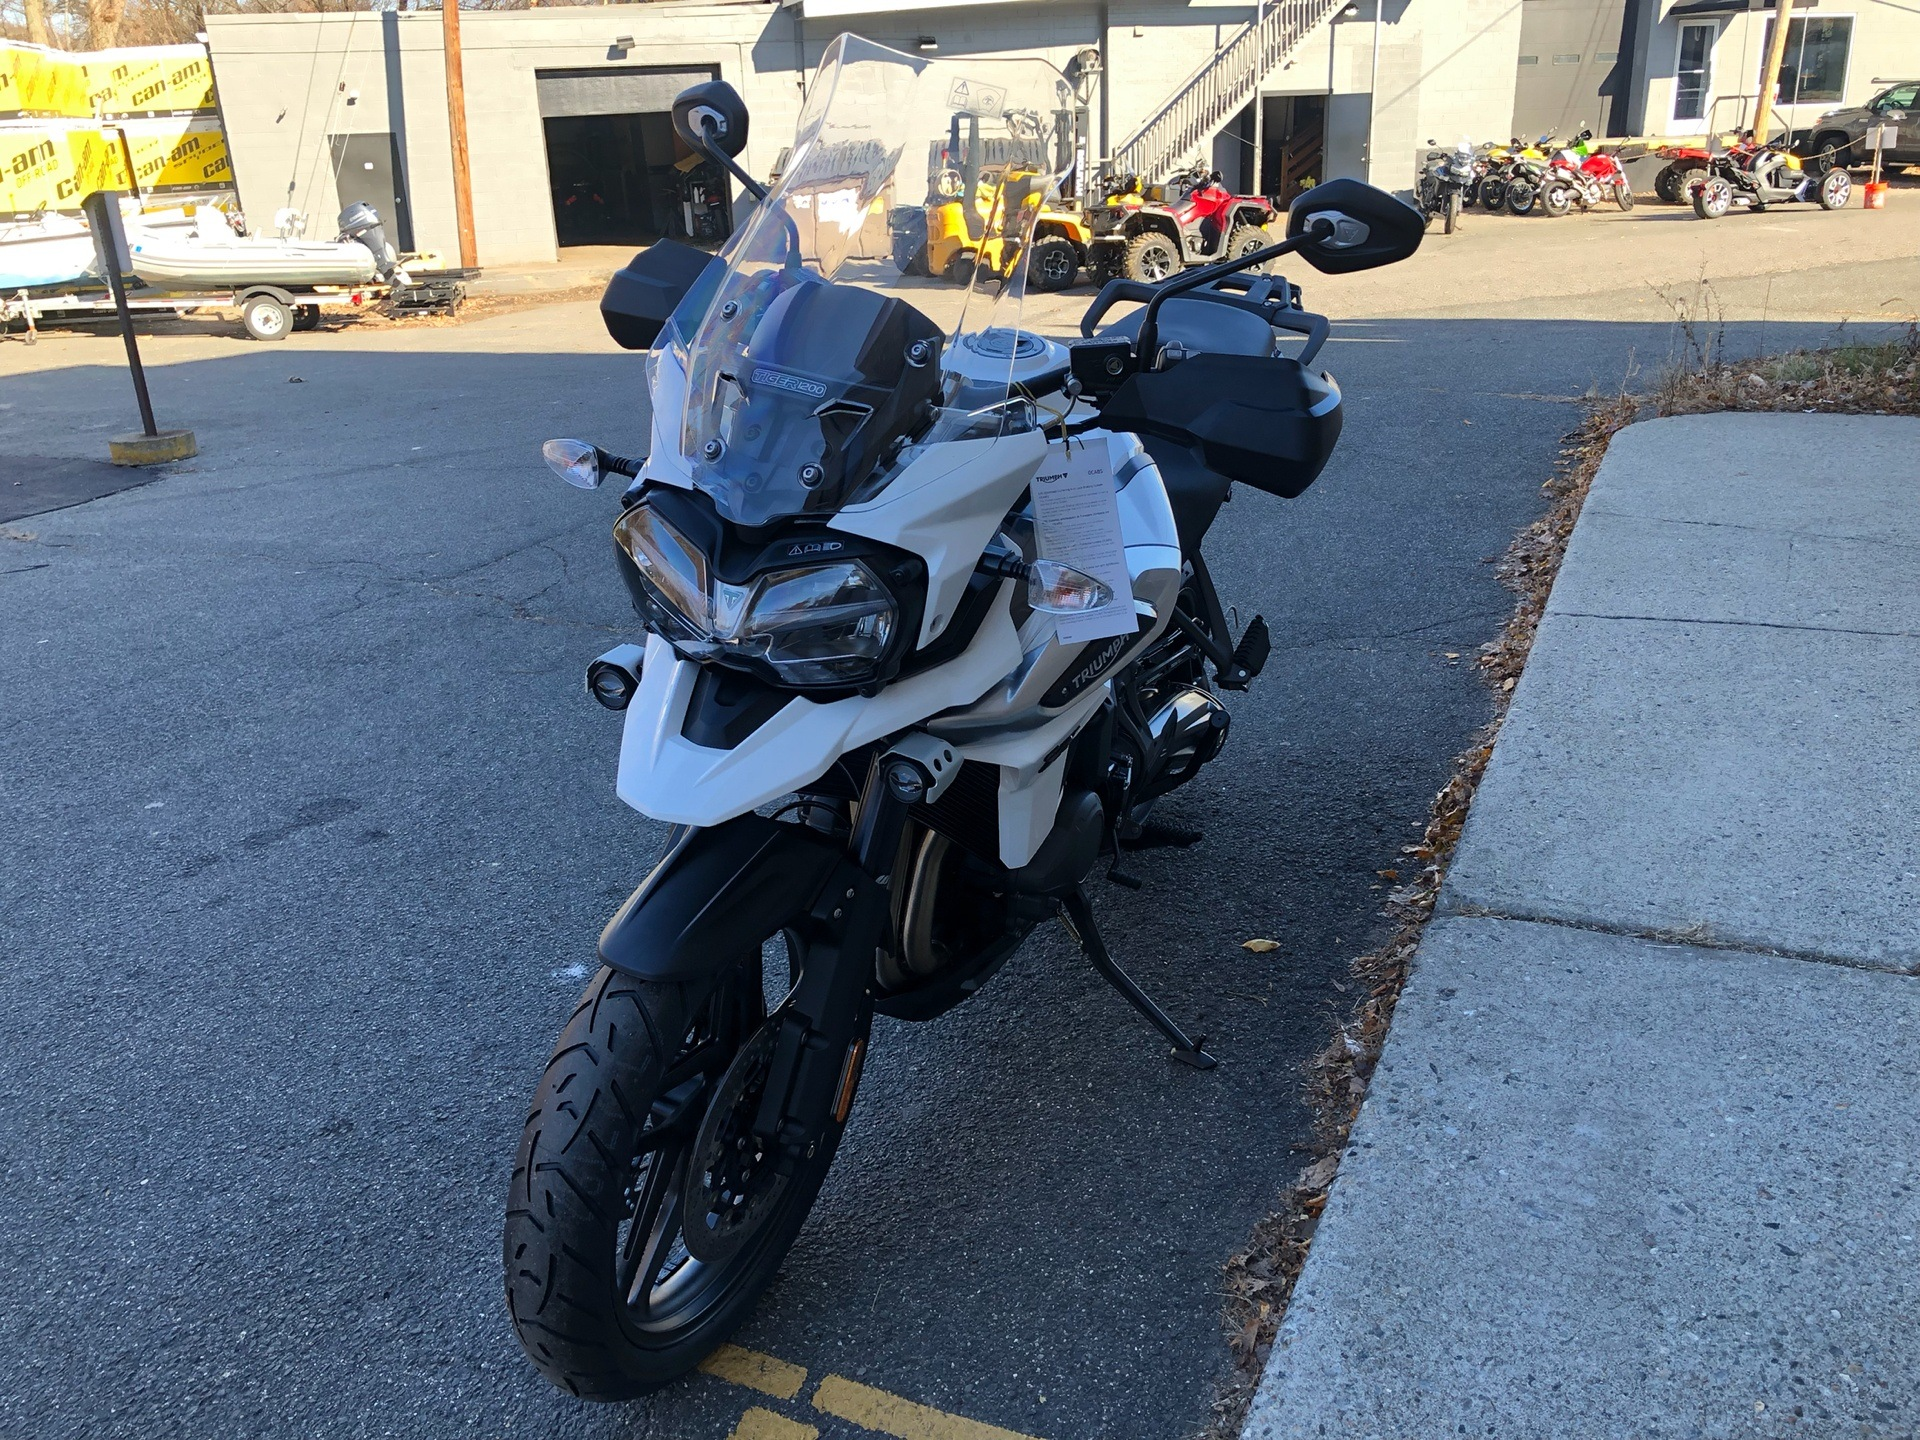 2019 Triumph Tiger 1200 XRt in Enfield, Connecticut - Photo 10